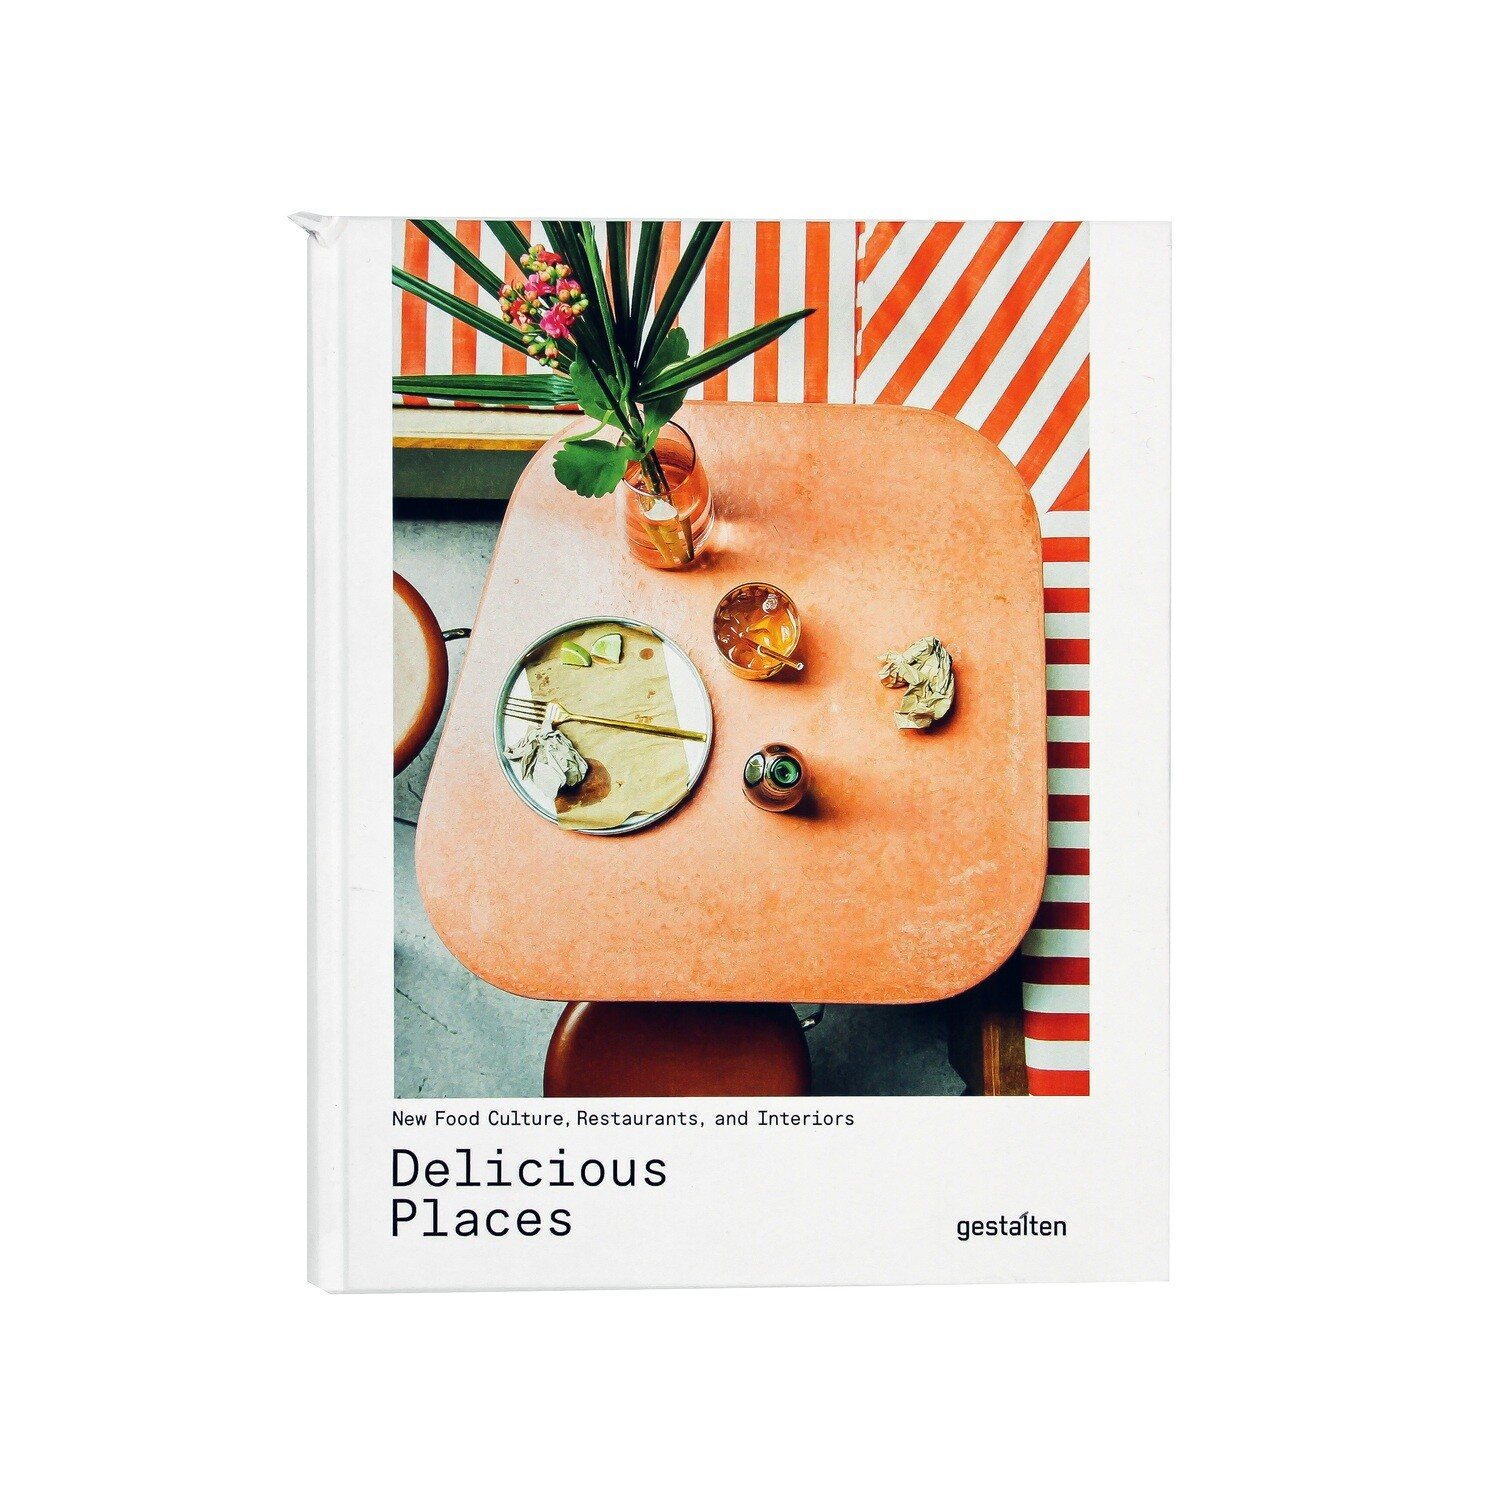 Delicious Places: New Food Culture, Restaurants & Interiors